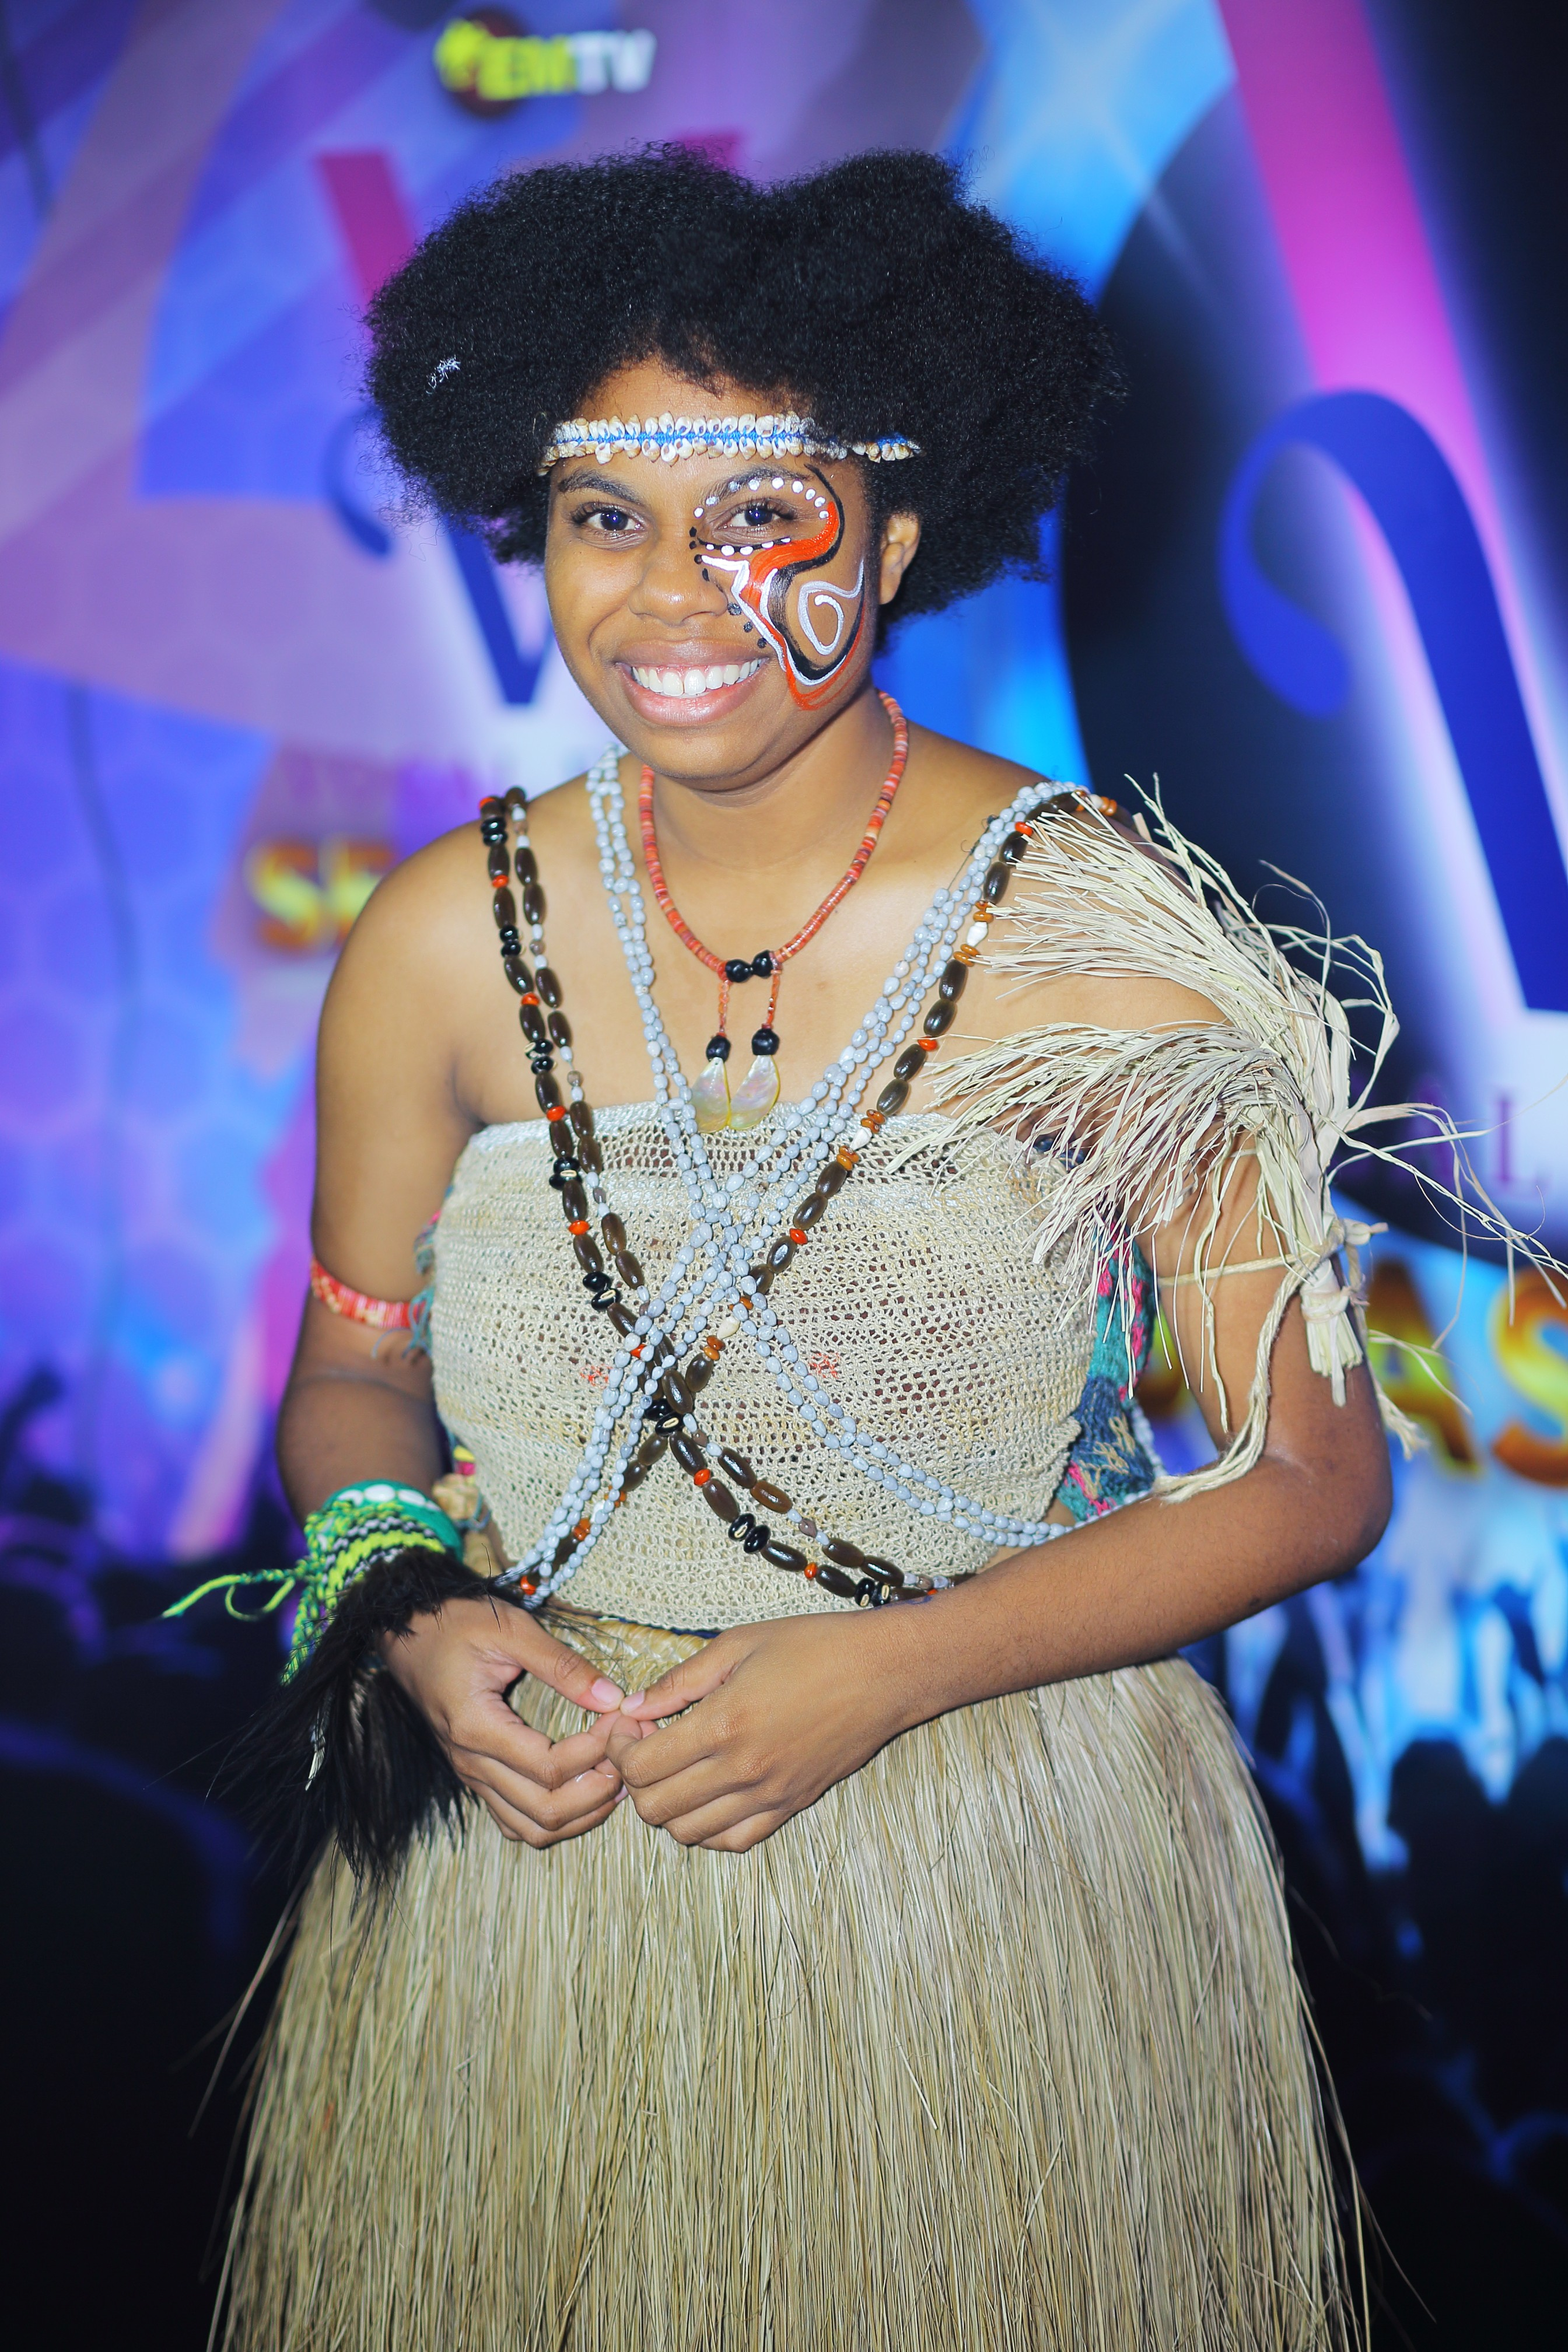 One of only two female contestants, Kirelle-Luen Bayagau hails from Milne Bay and Morobe. The 18 year old goes to school at Port Moresby International School. She enjoys listening to Indie, Pop, and Jazz music. Kirelle's favourite musical artist is Sia.